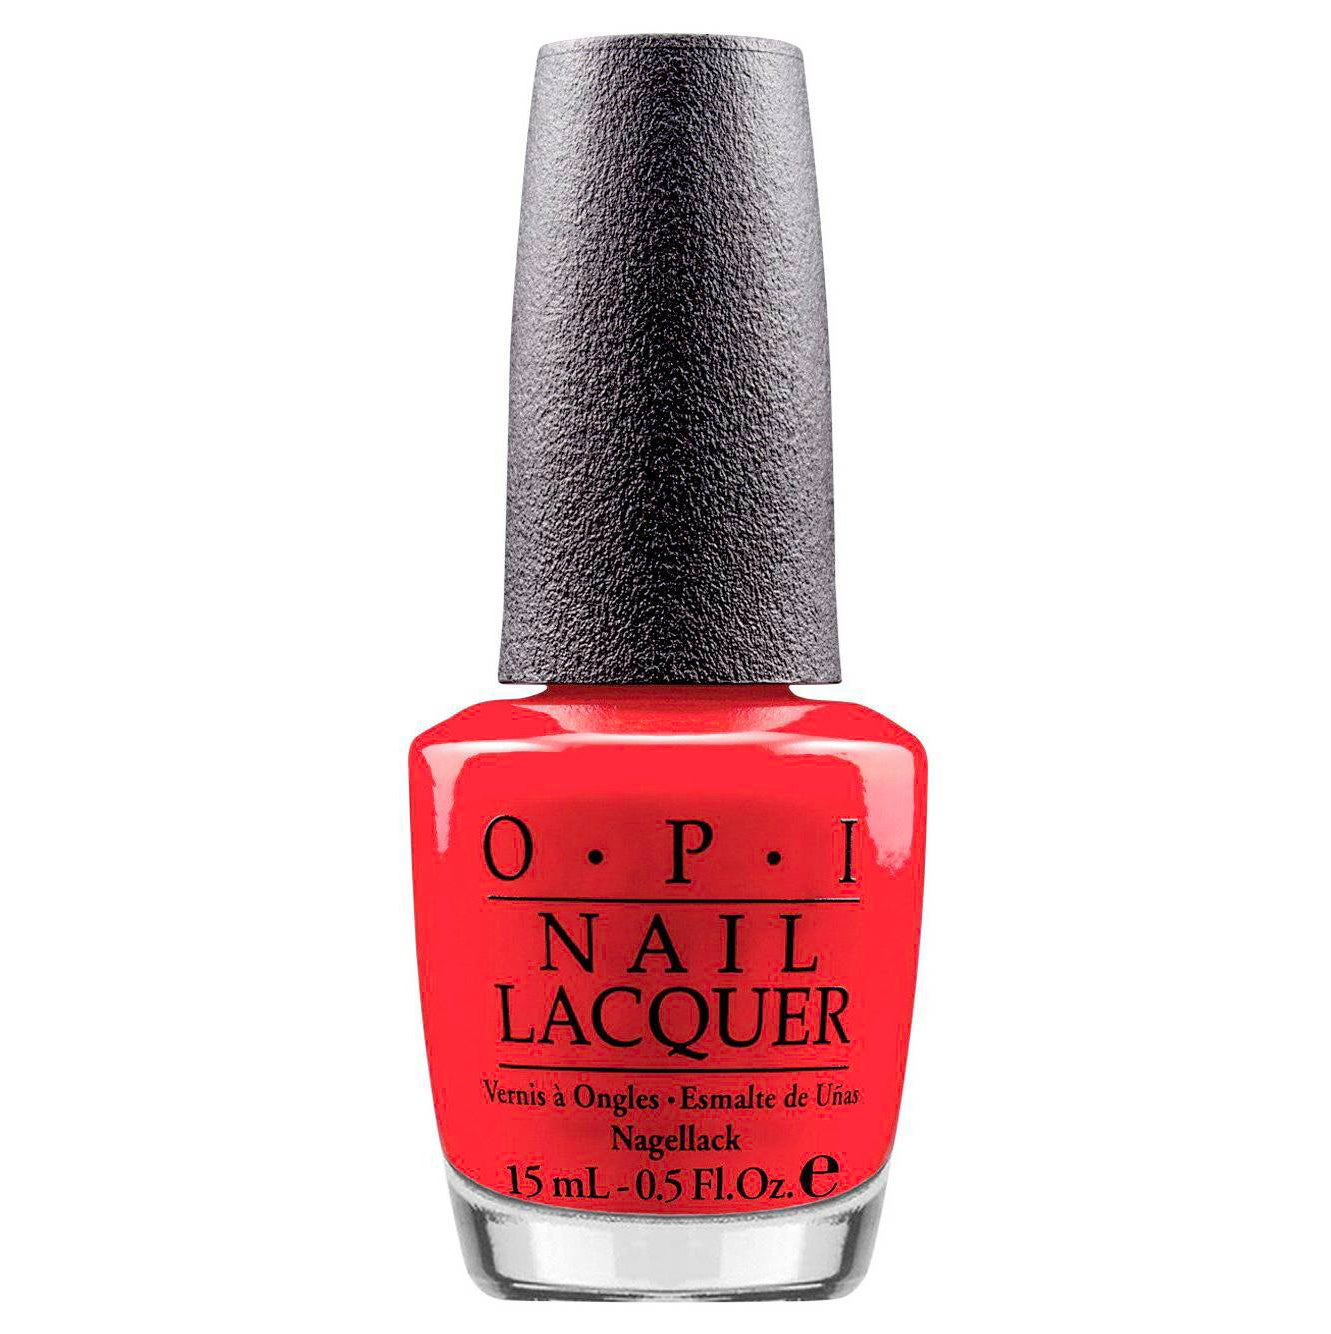 OPI Nail Lacquer in Red Lights